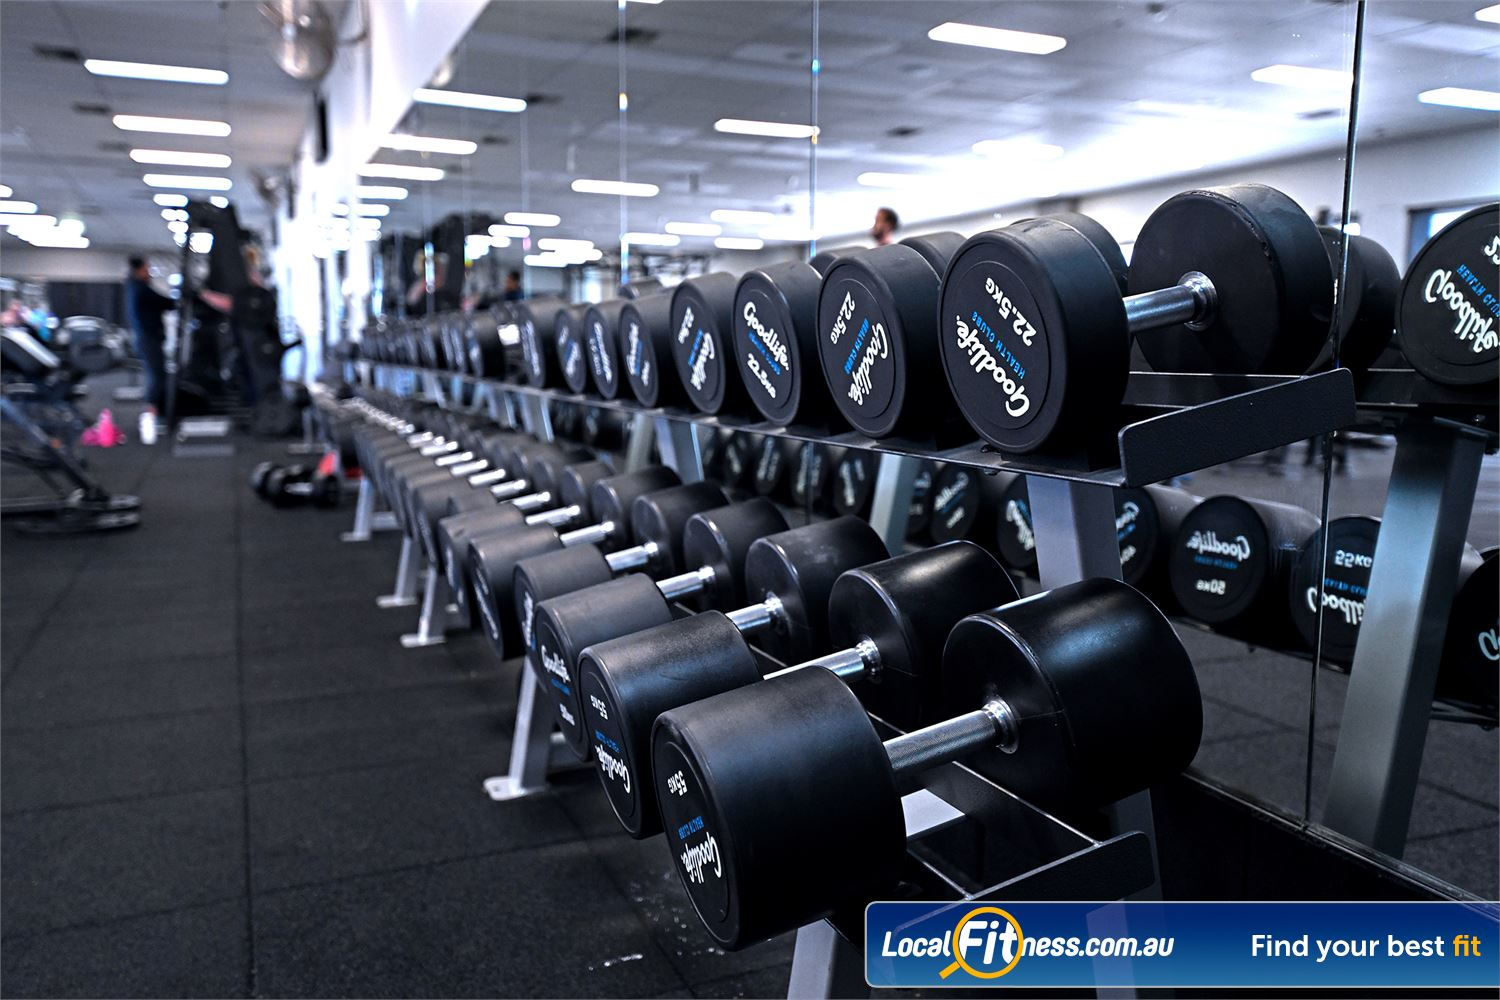 Goodlife Health Clubs Near Tarneit Our 24 hour Hoppers Crossing gym includes dumbbells for all ages and abilities.